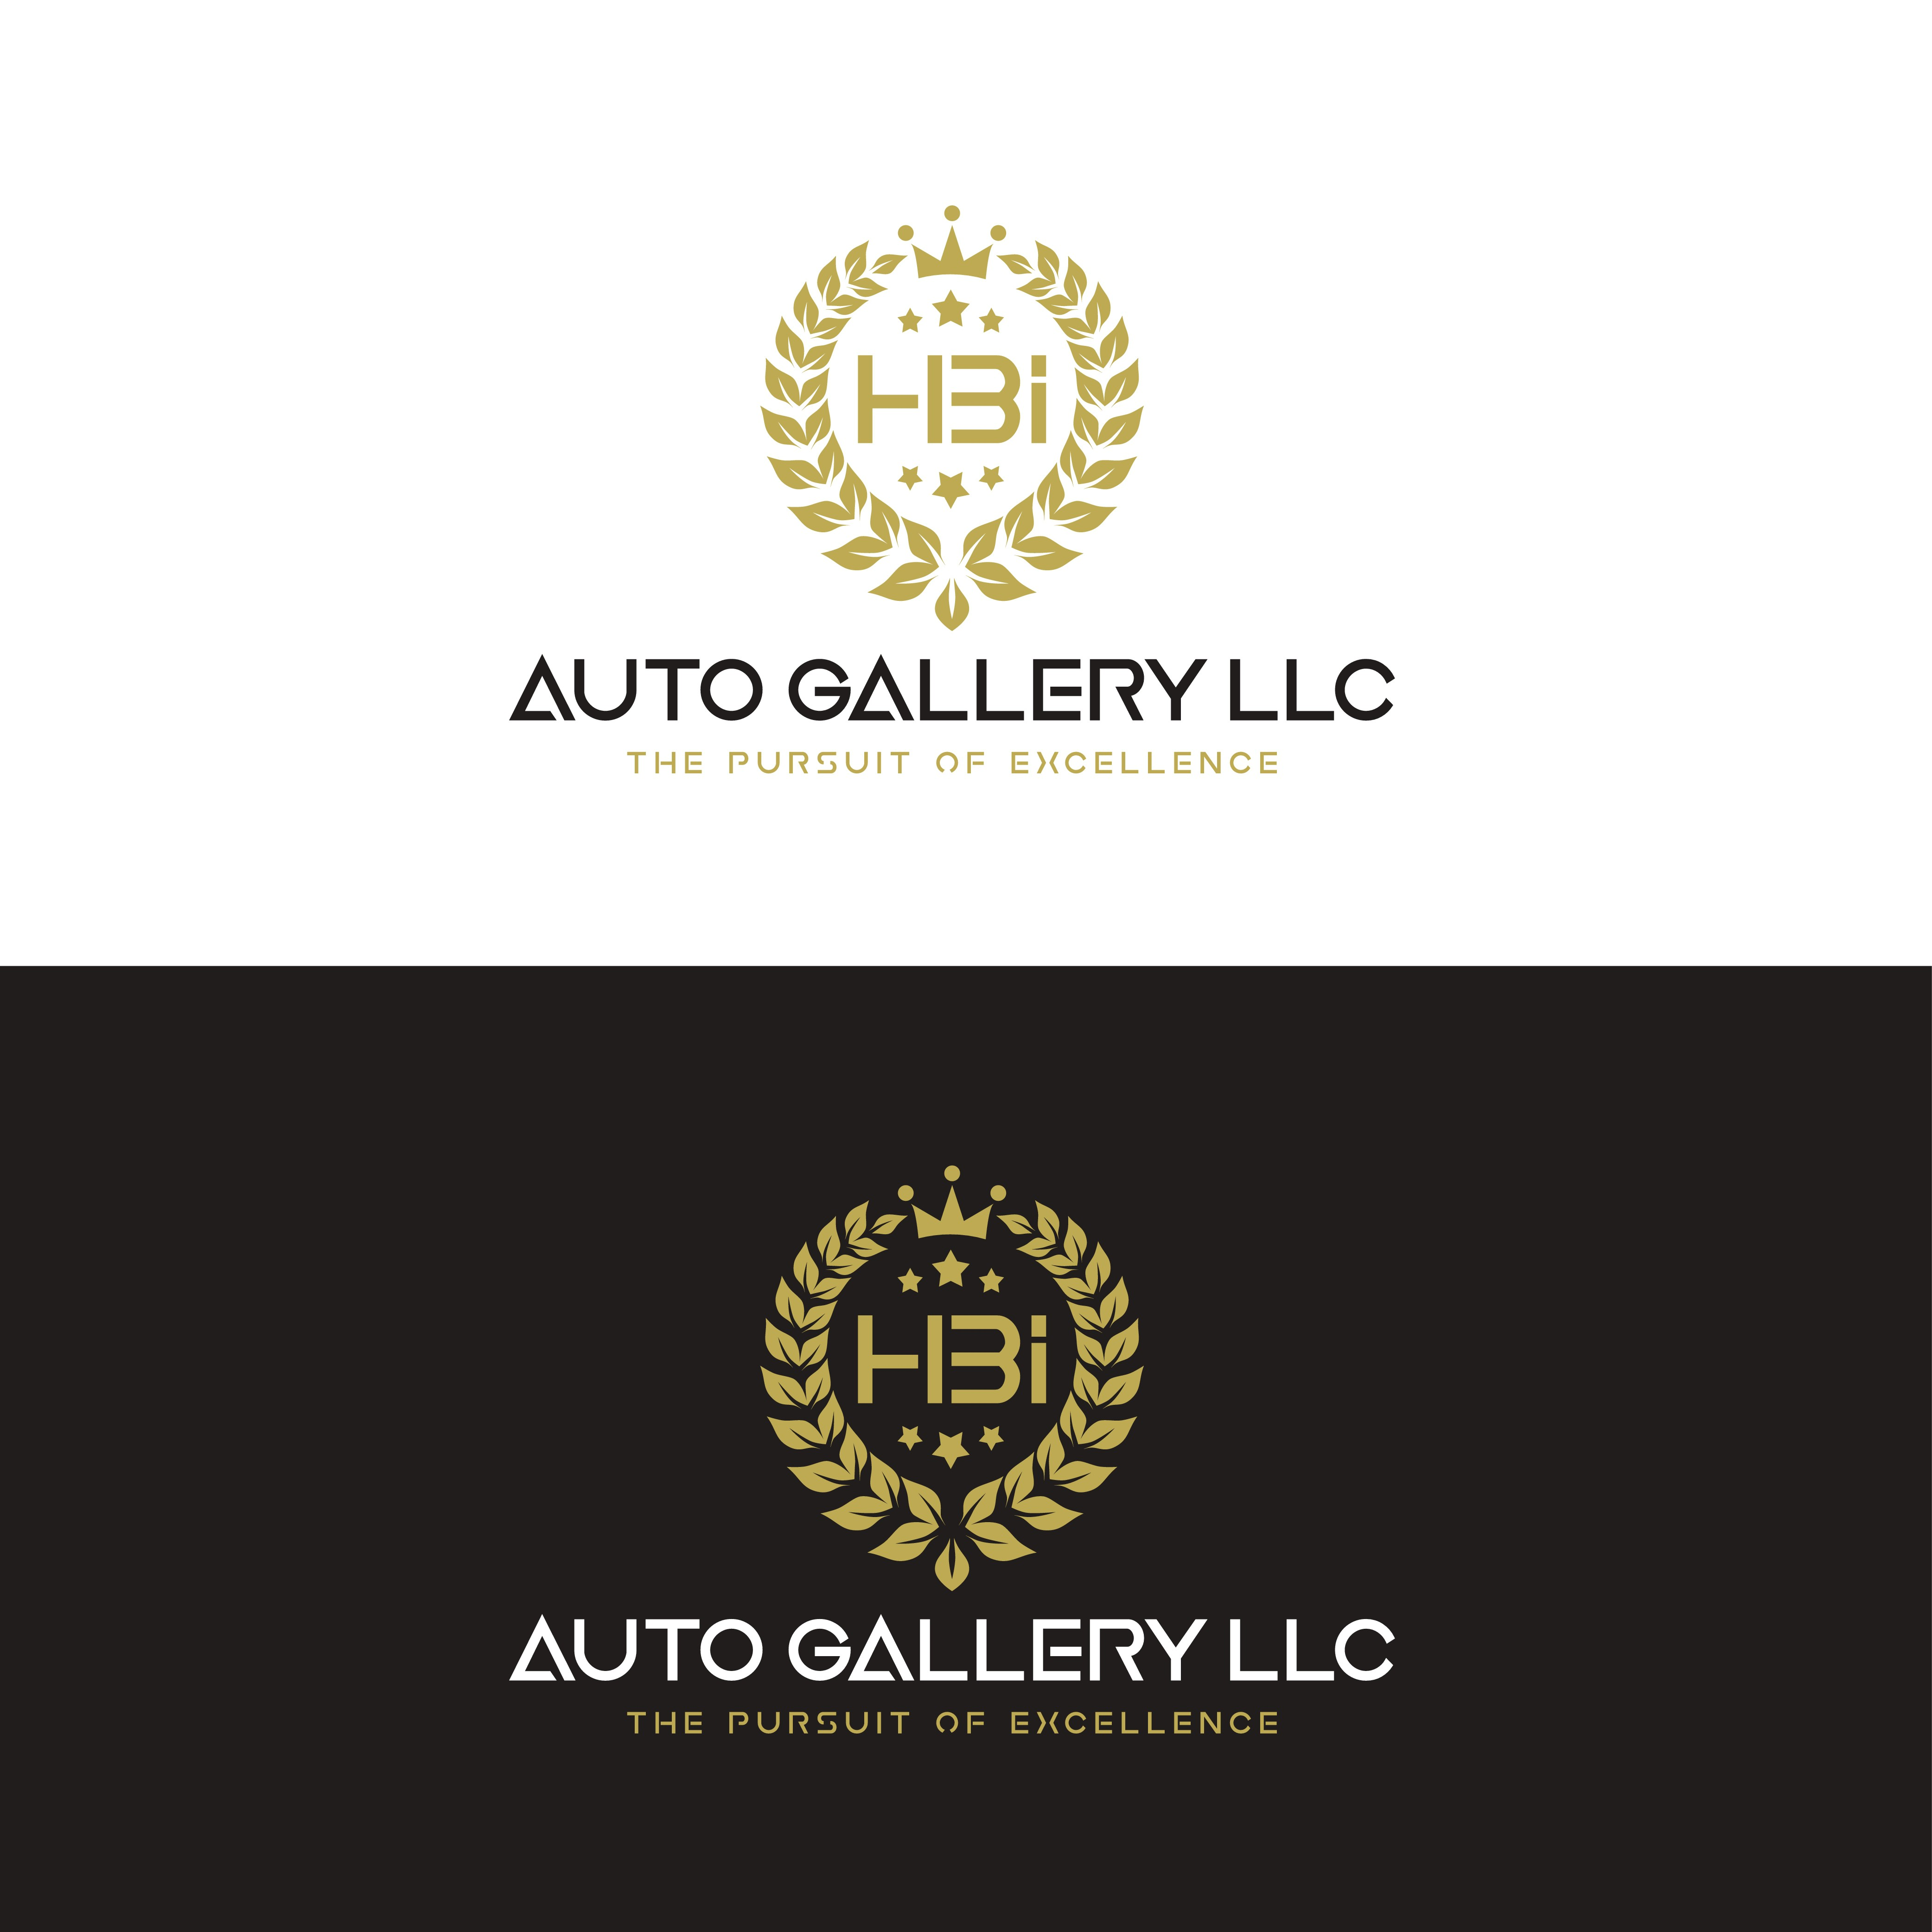 The design of an luxury automotive dealerships brand.